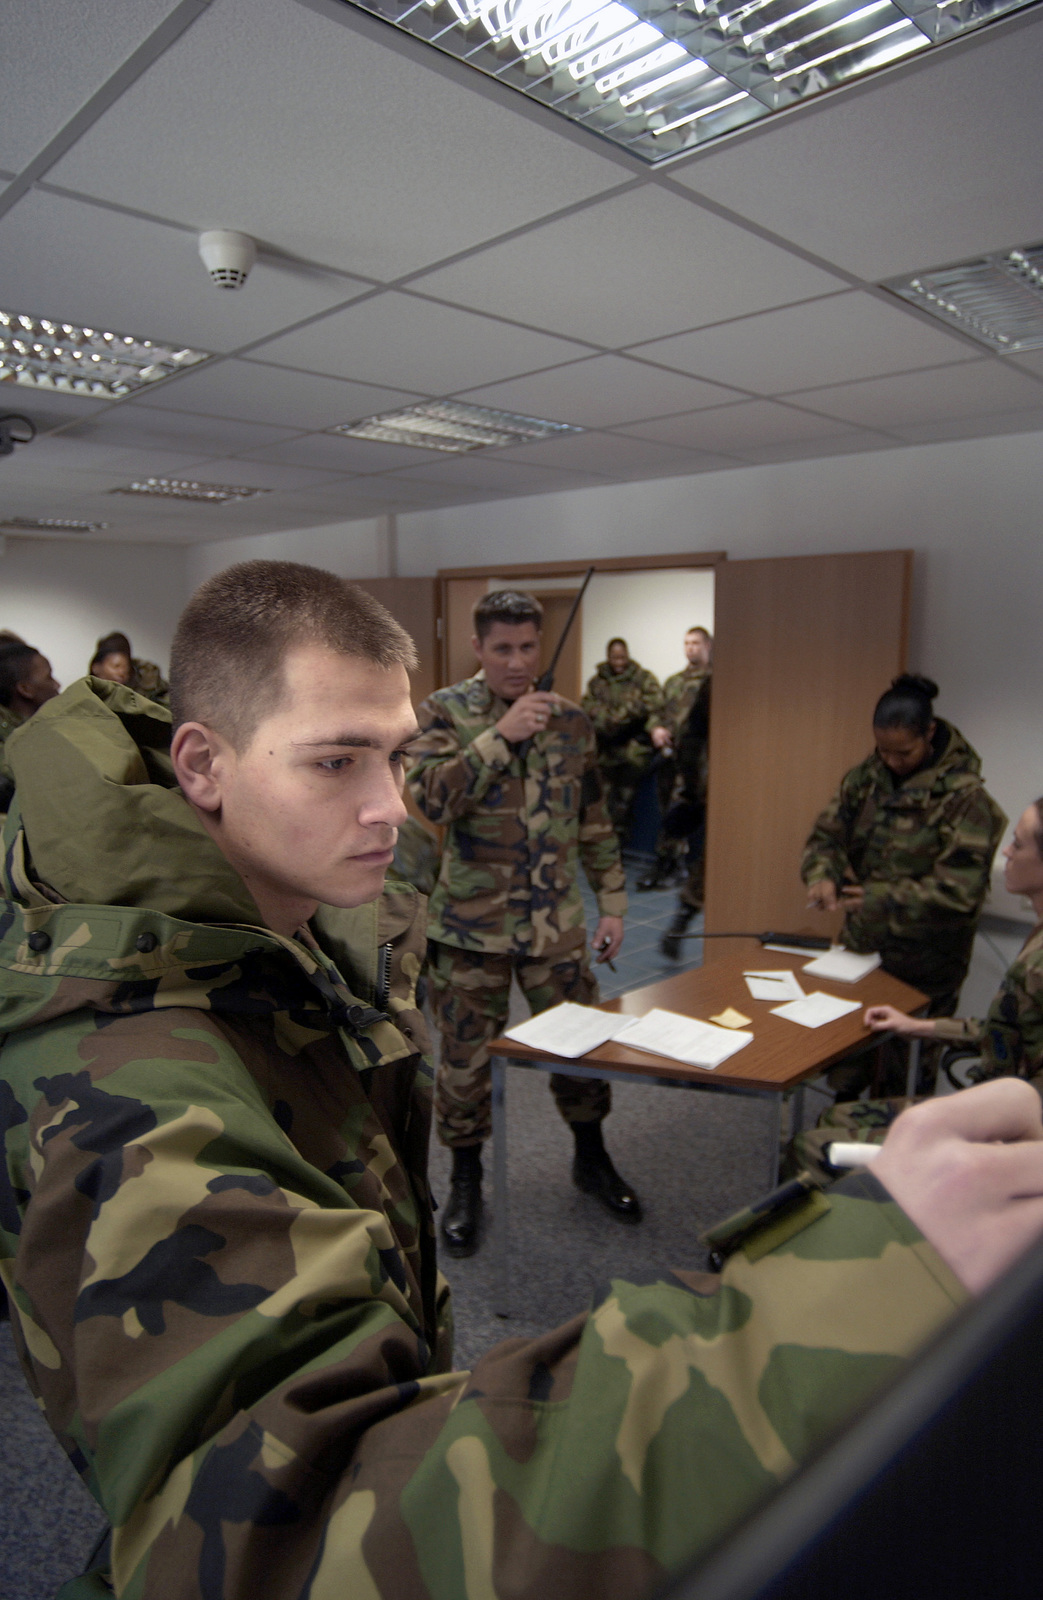 US Air Force (USAF) AIRMAN First Class (A1C) Chase Hoffman (foreground), 569th Security Forces Squadron (SFS), updates the operations board during a riot control training scenario at Vogelweh Air Station (AS), Kaiserslautern, Germany